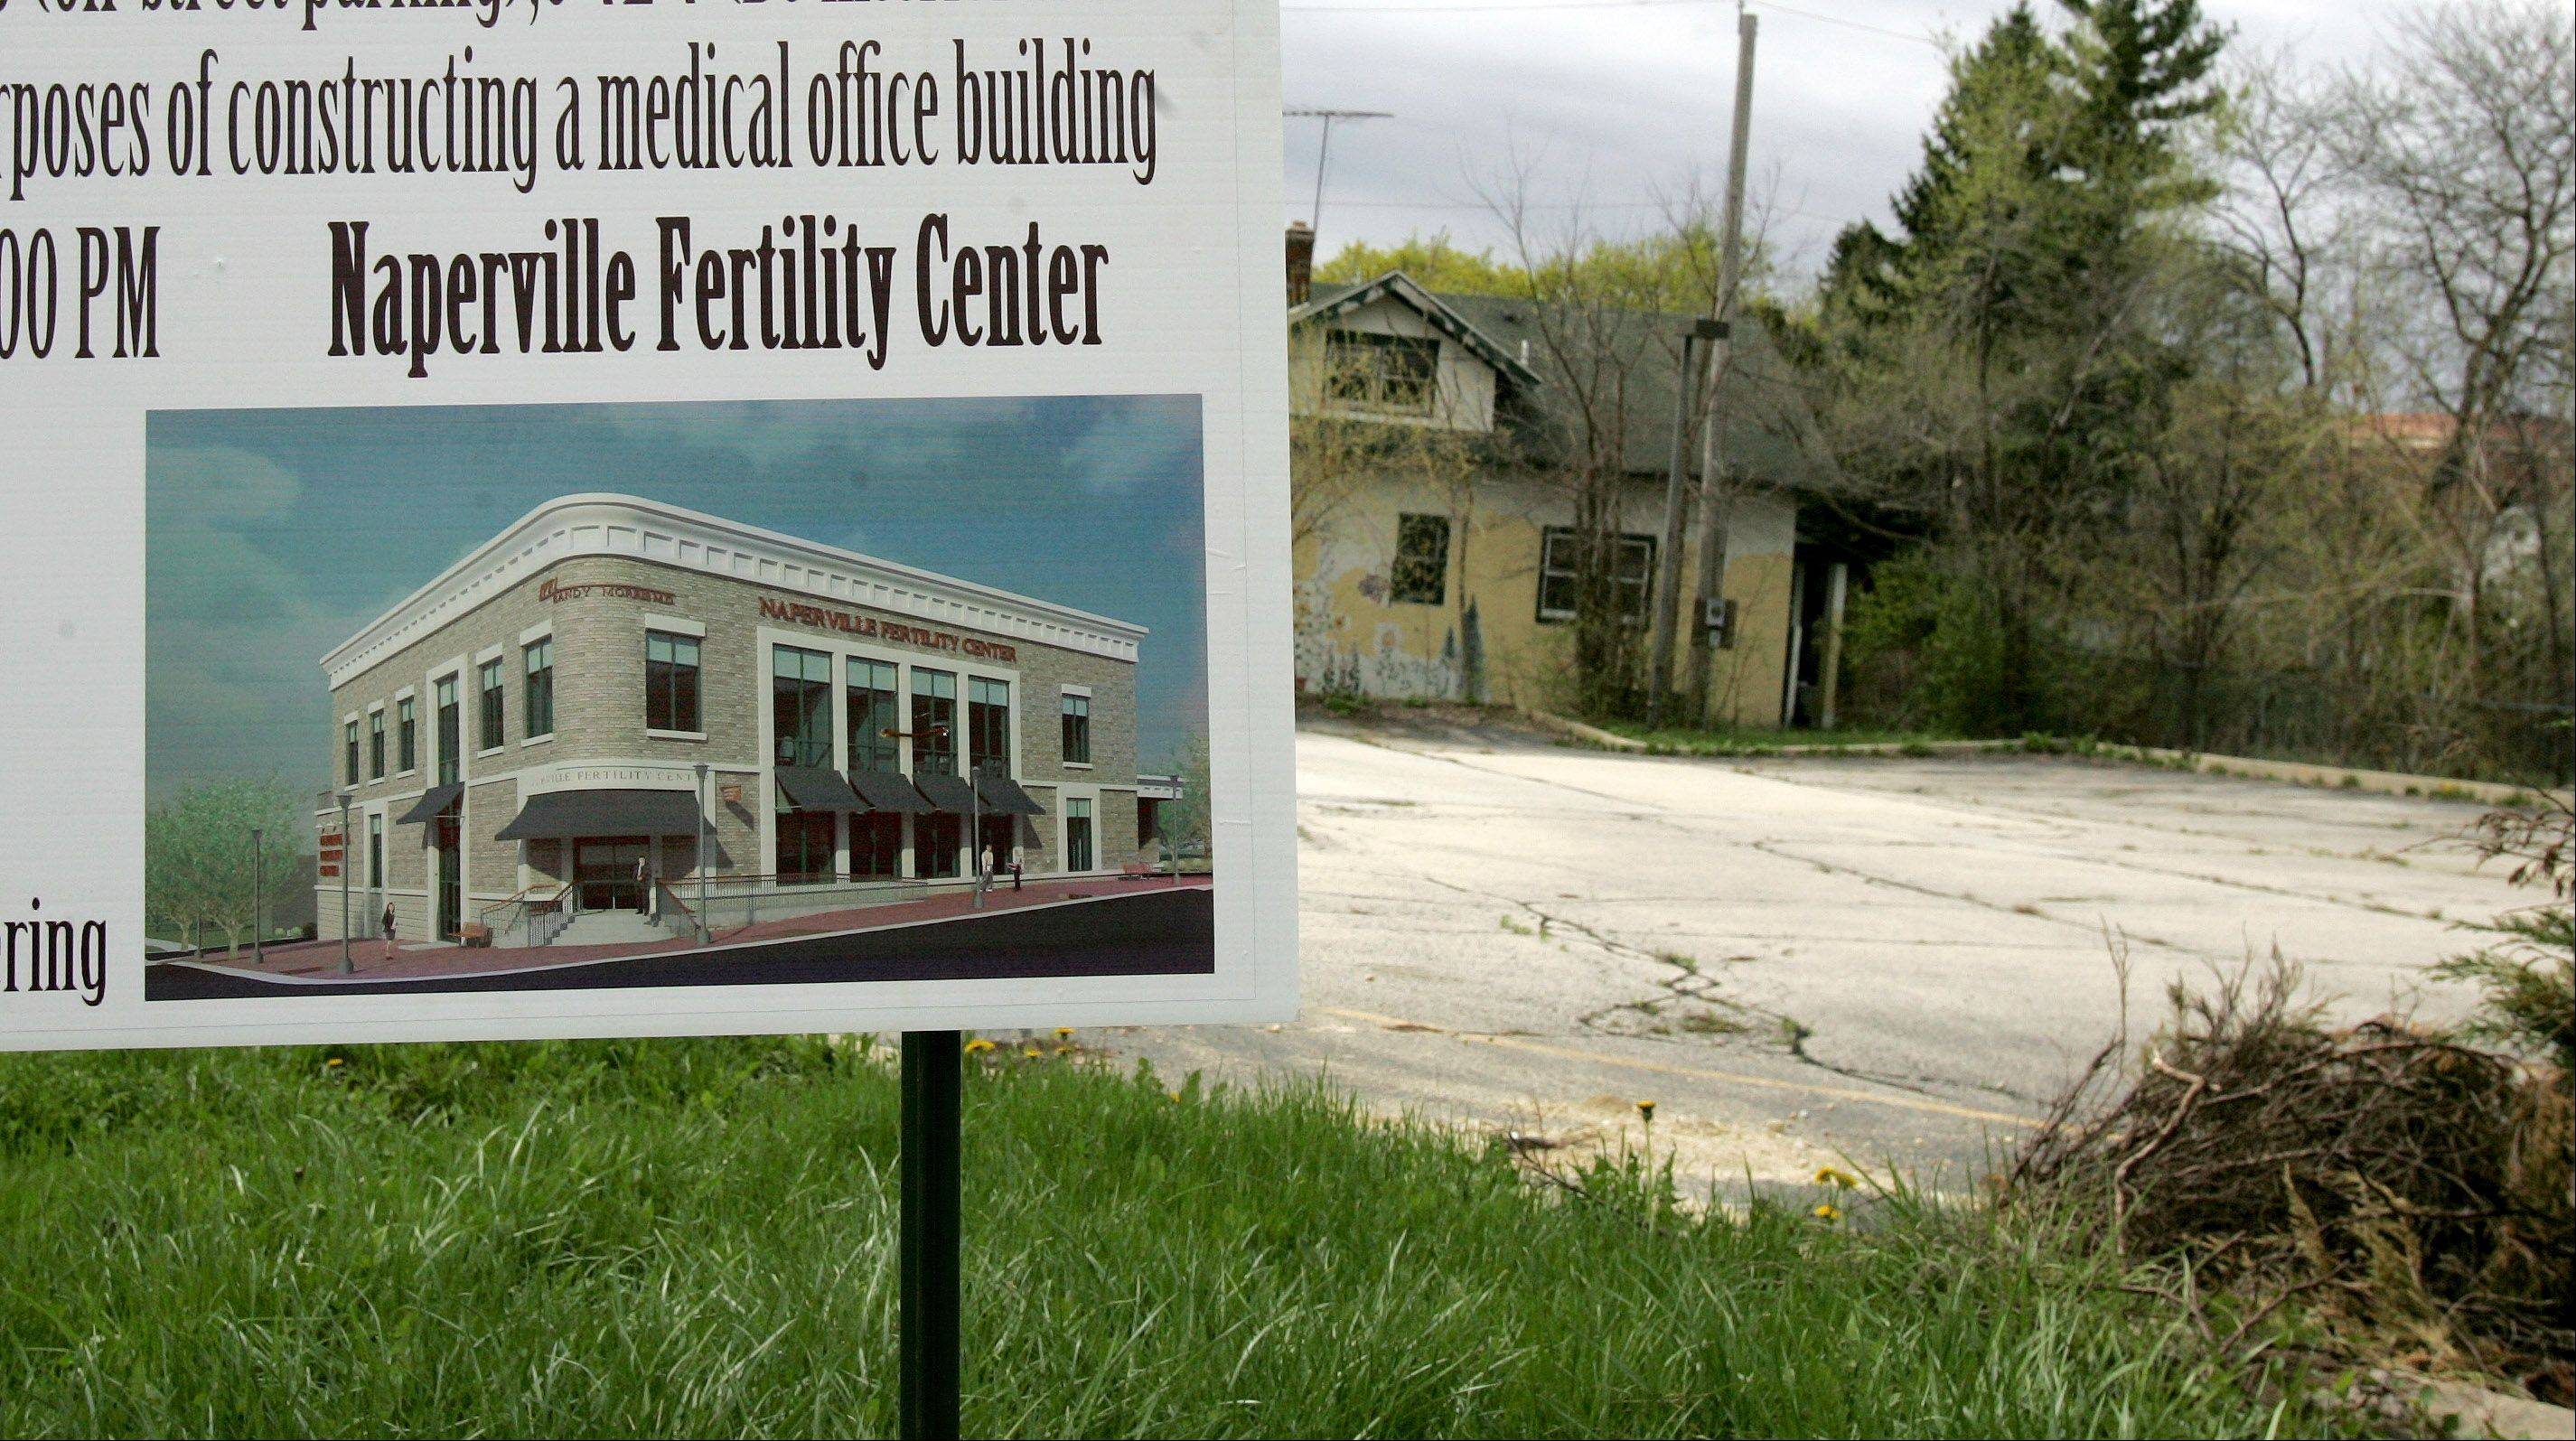 Dr. Randy Morris hopes to consolidate his office and fertility clinic on this lot at Washington Street and Benton Avenue in downtown Naperville.